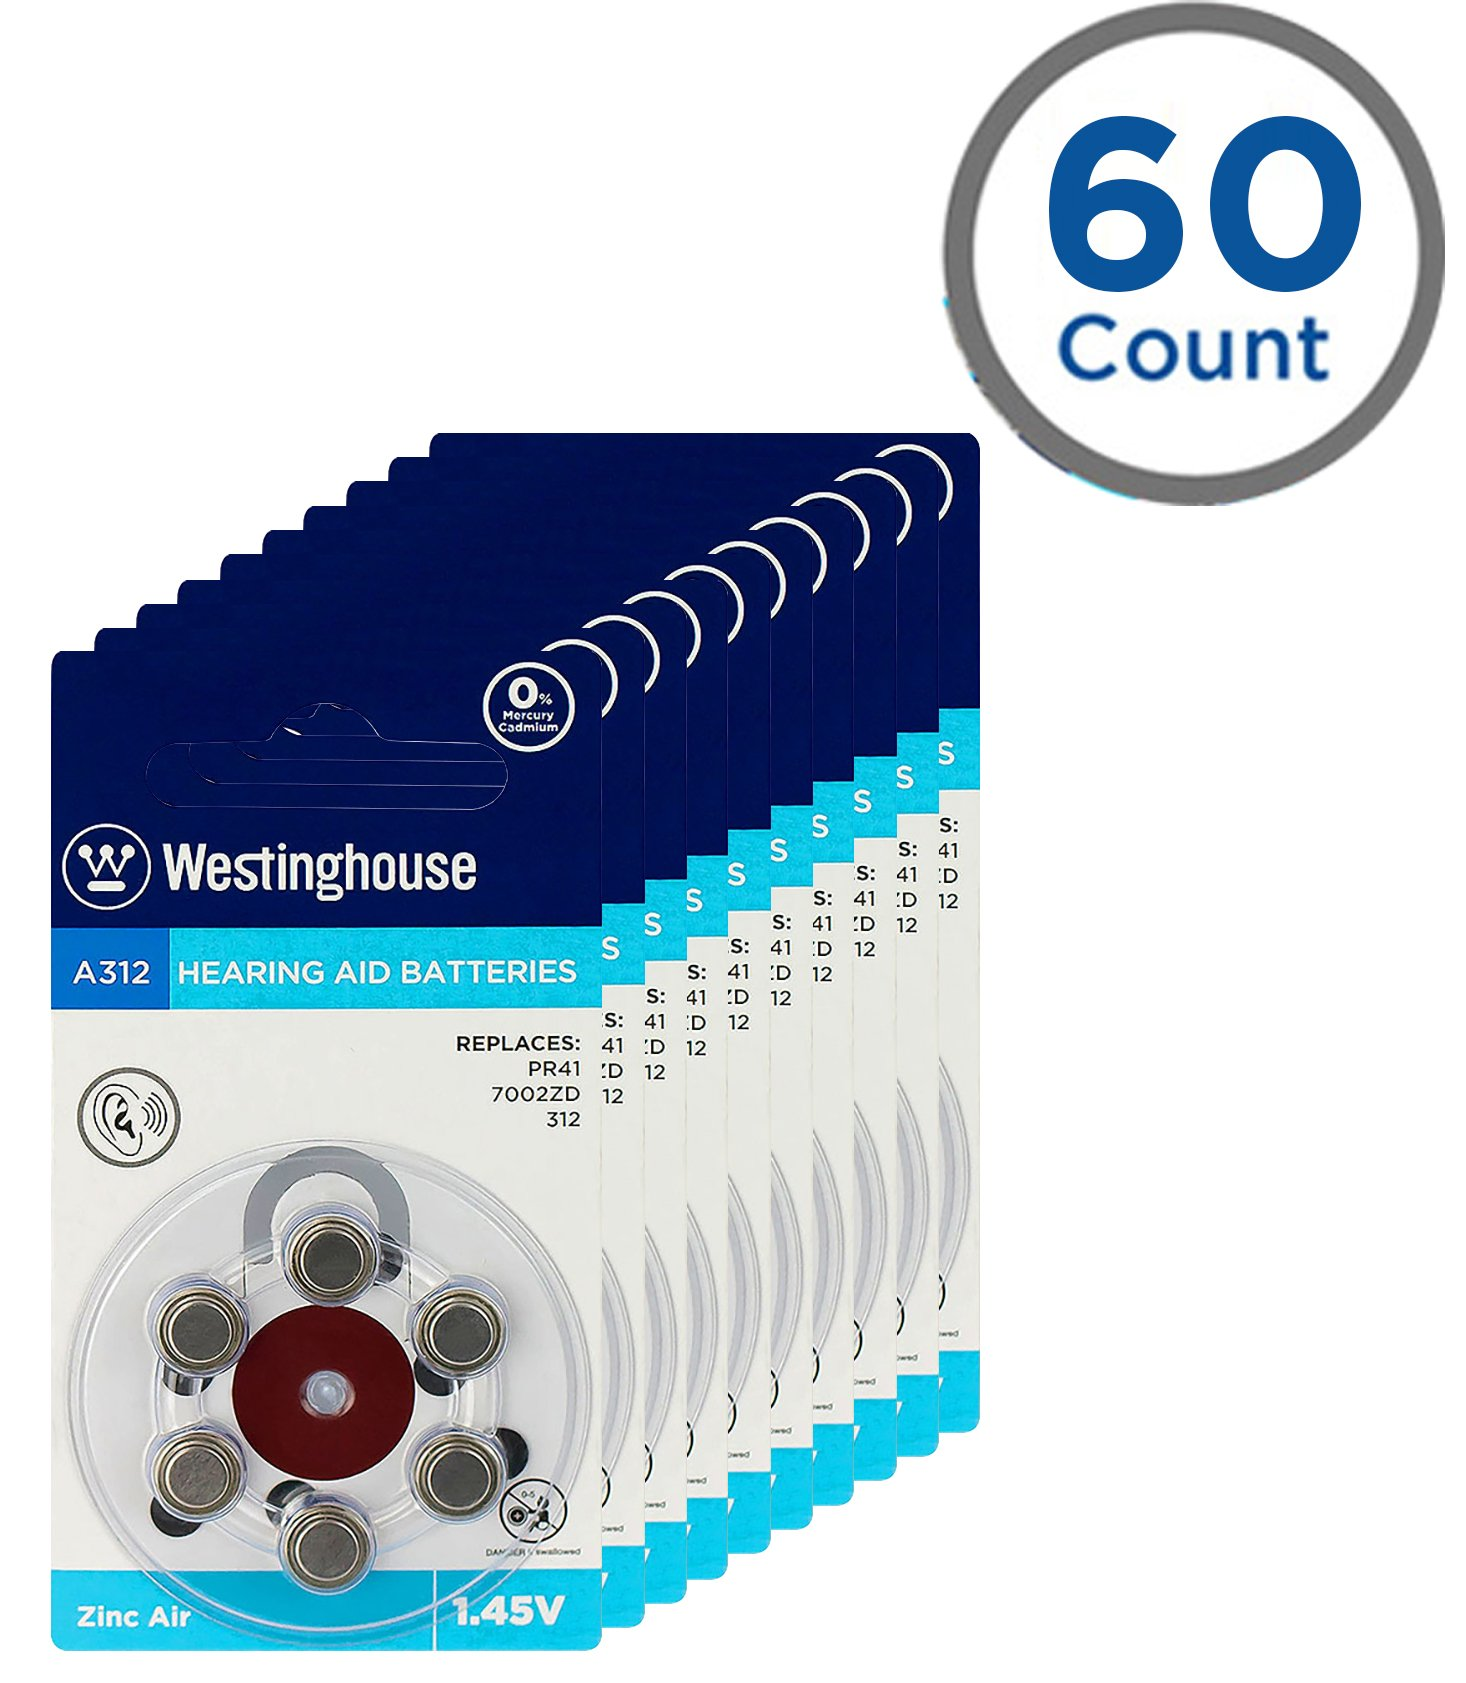 Westinghouse Hearing aid Battery A312, Zinc Air Batteries, Mercury Free (A312, 60 Counts)